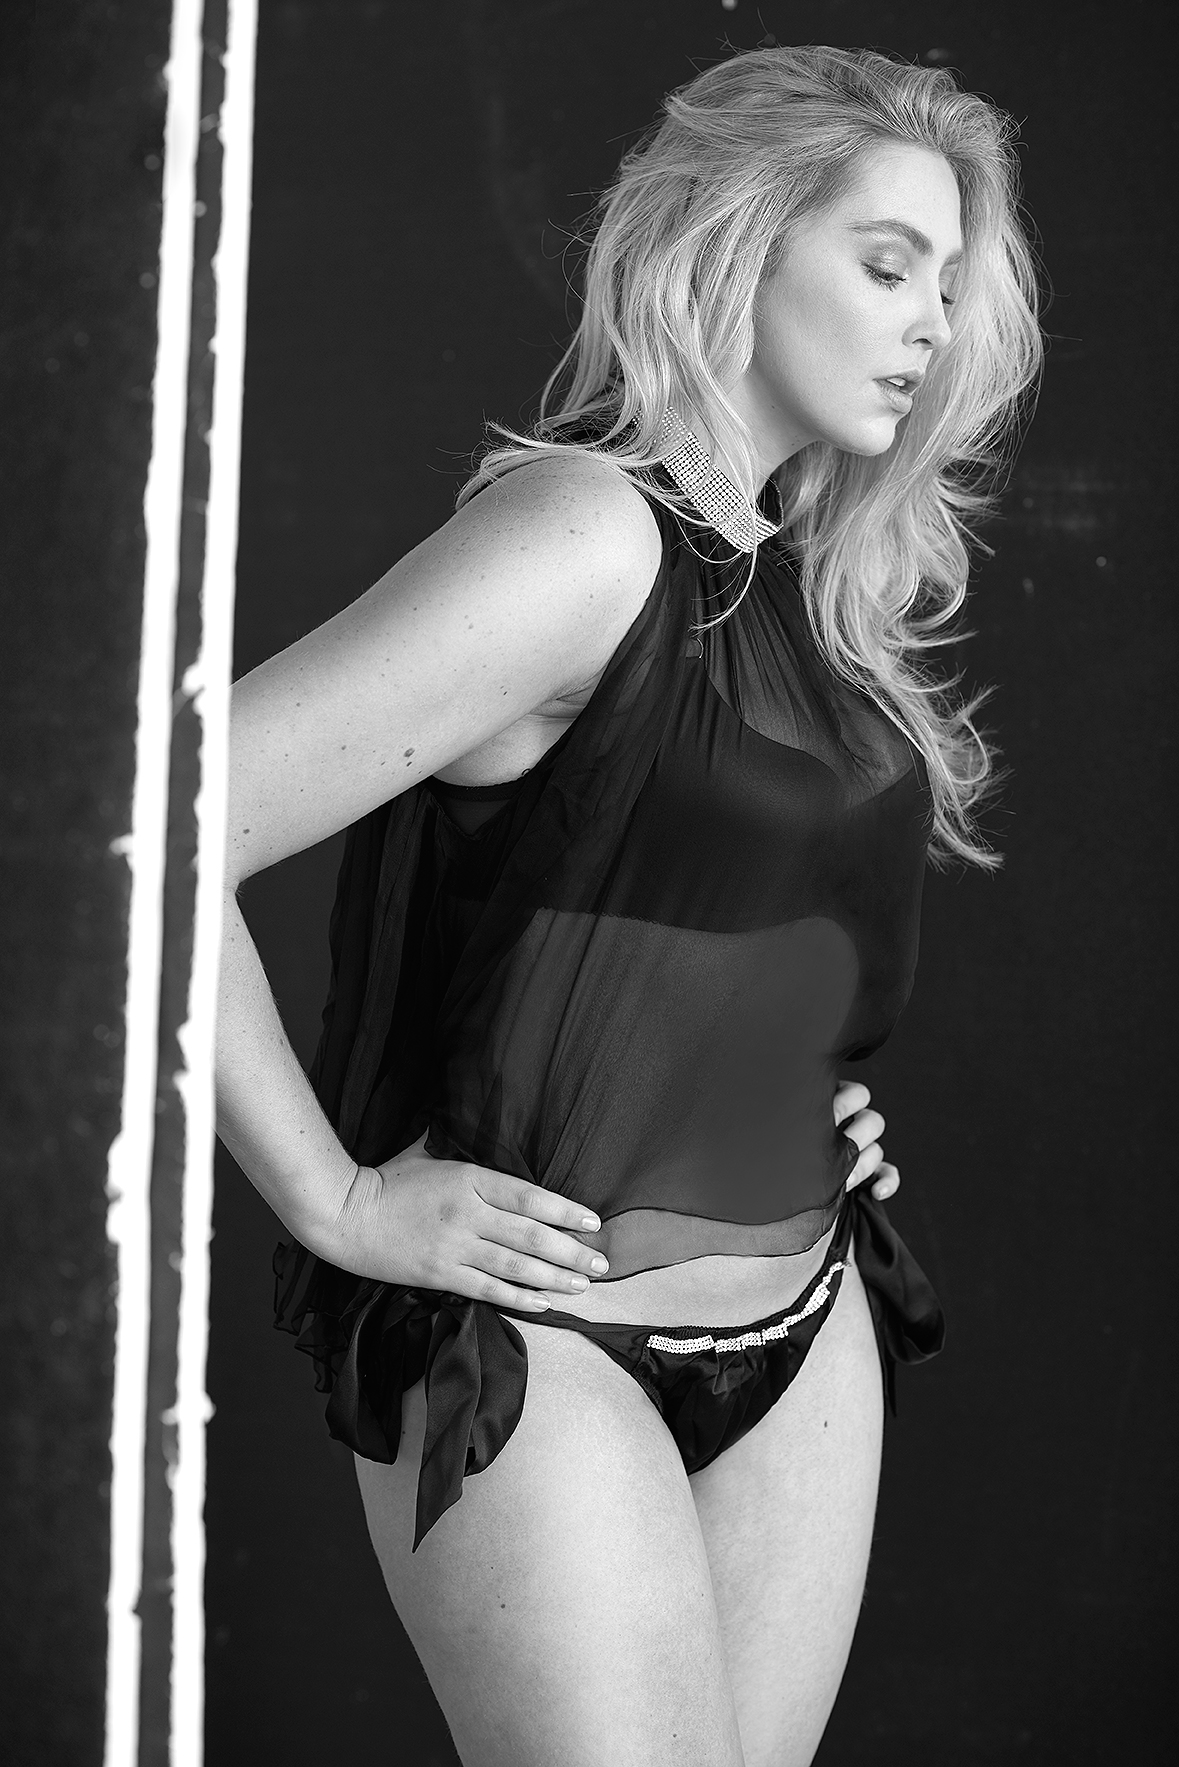 behind-the-scenes-lingerie-la-femme-photo-shoot-luxury-underwear-black-lace-09